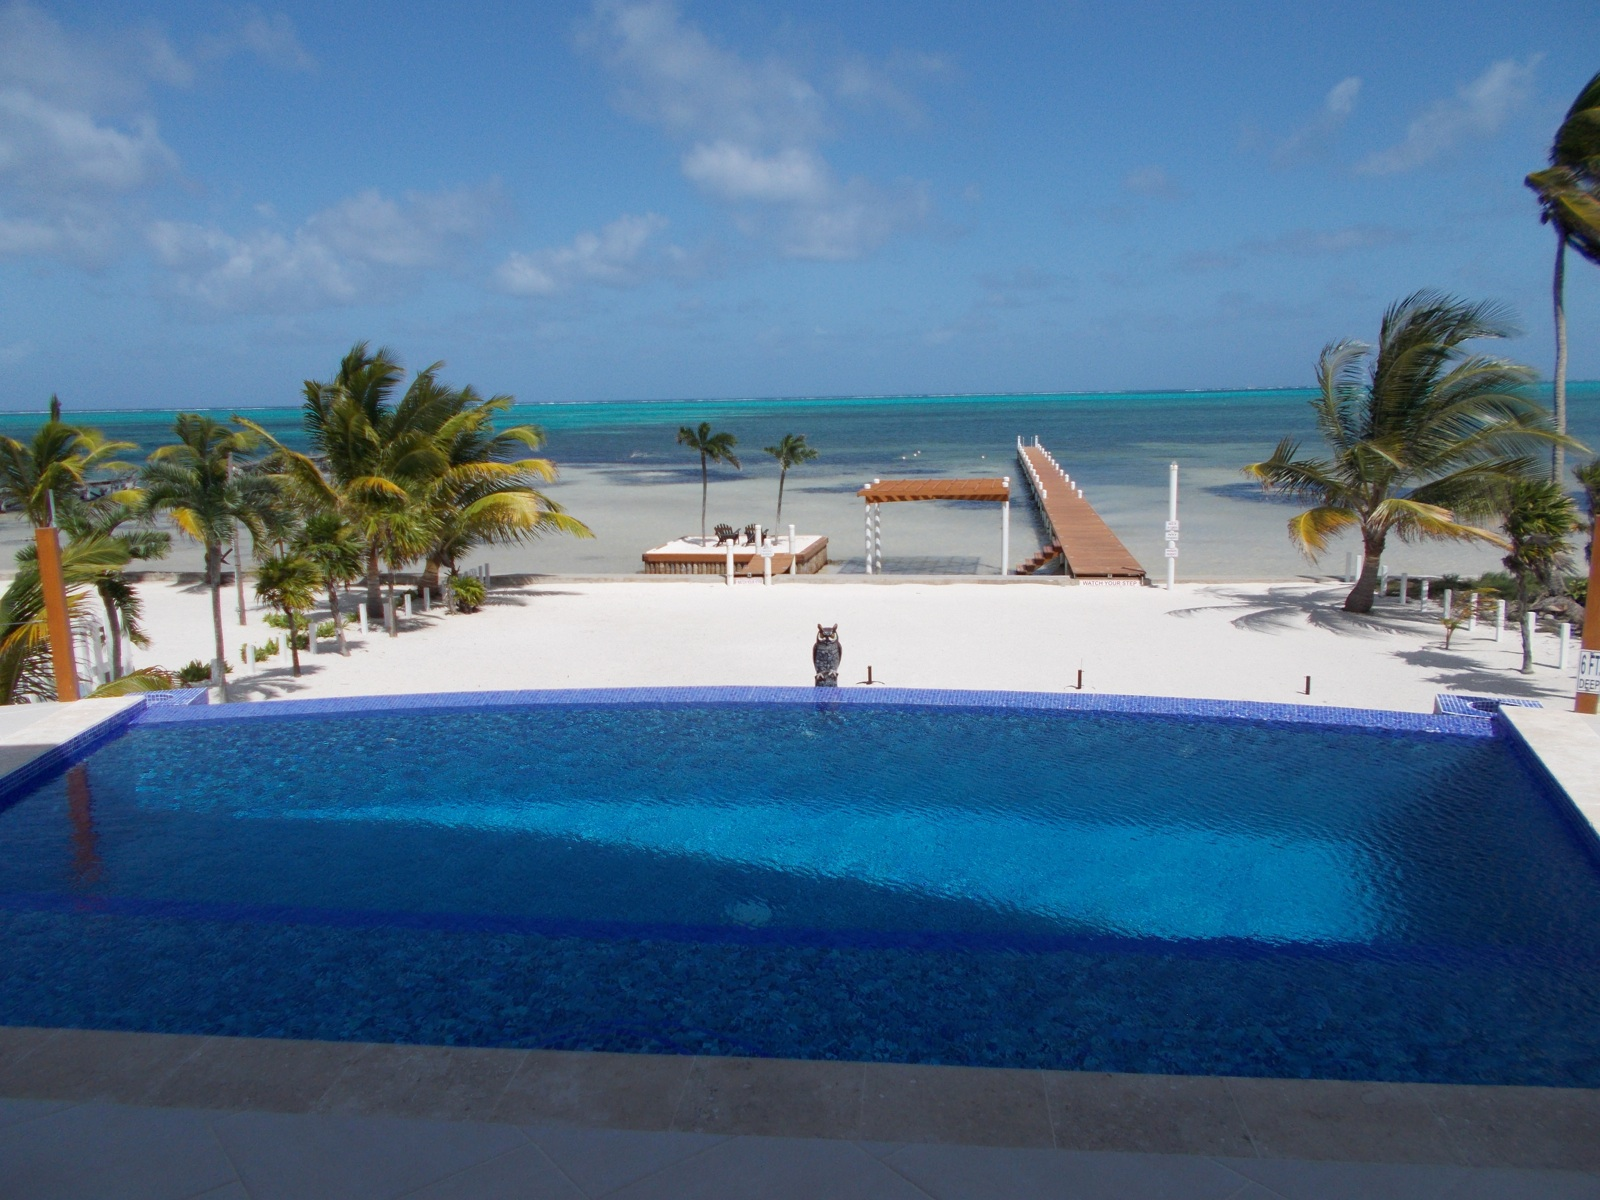 Single Family Home for Rent at Villa Regazza Belize San Pedro Town, Ambergris Caye Belize